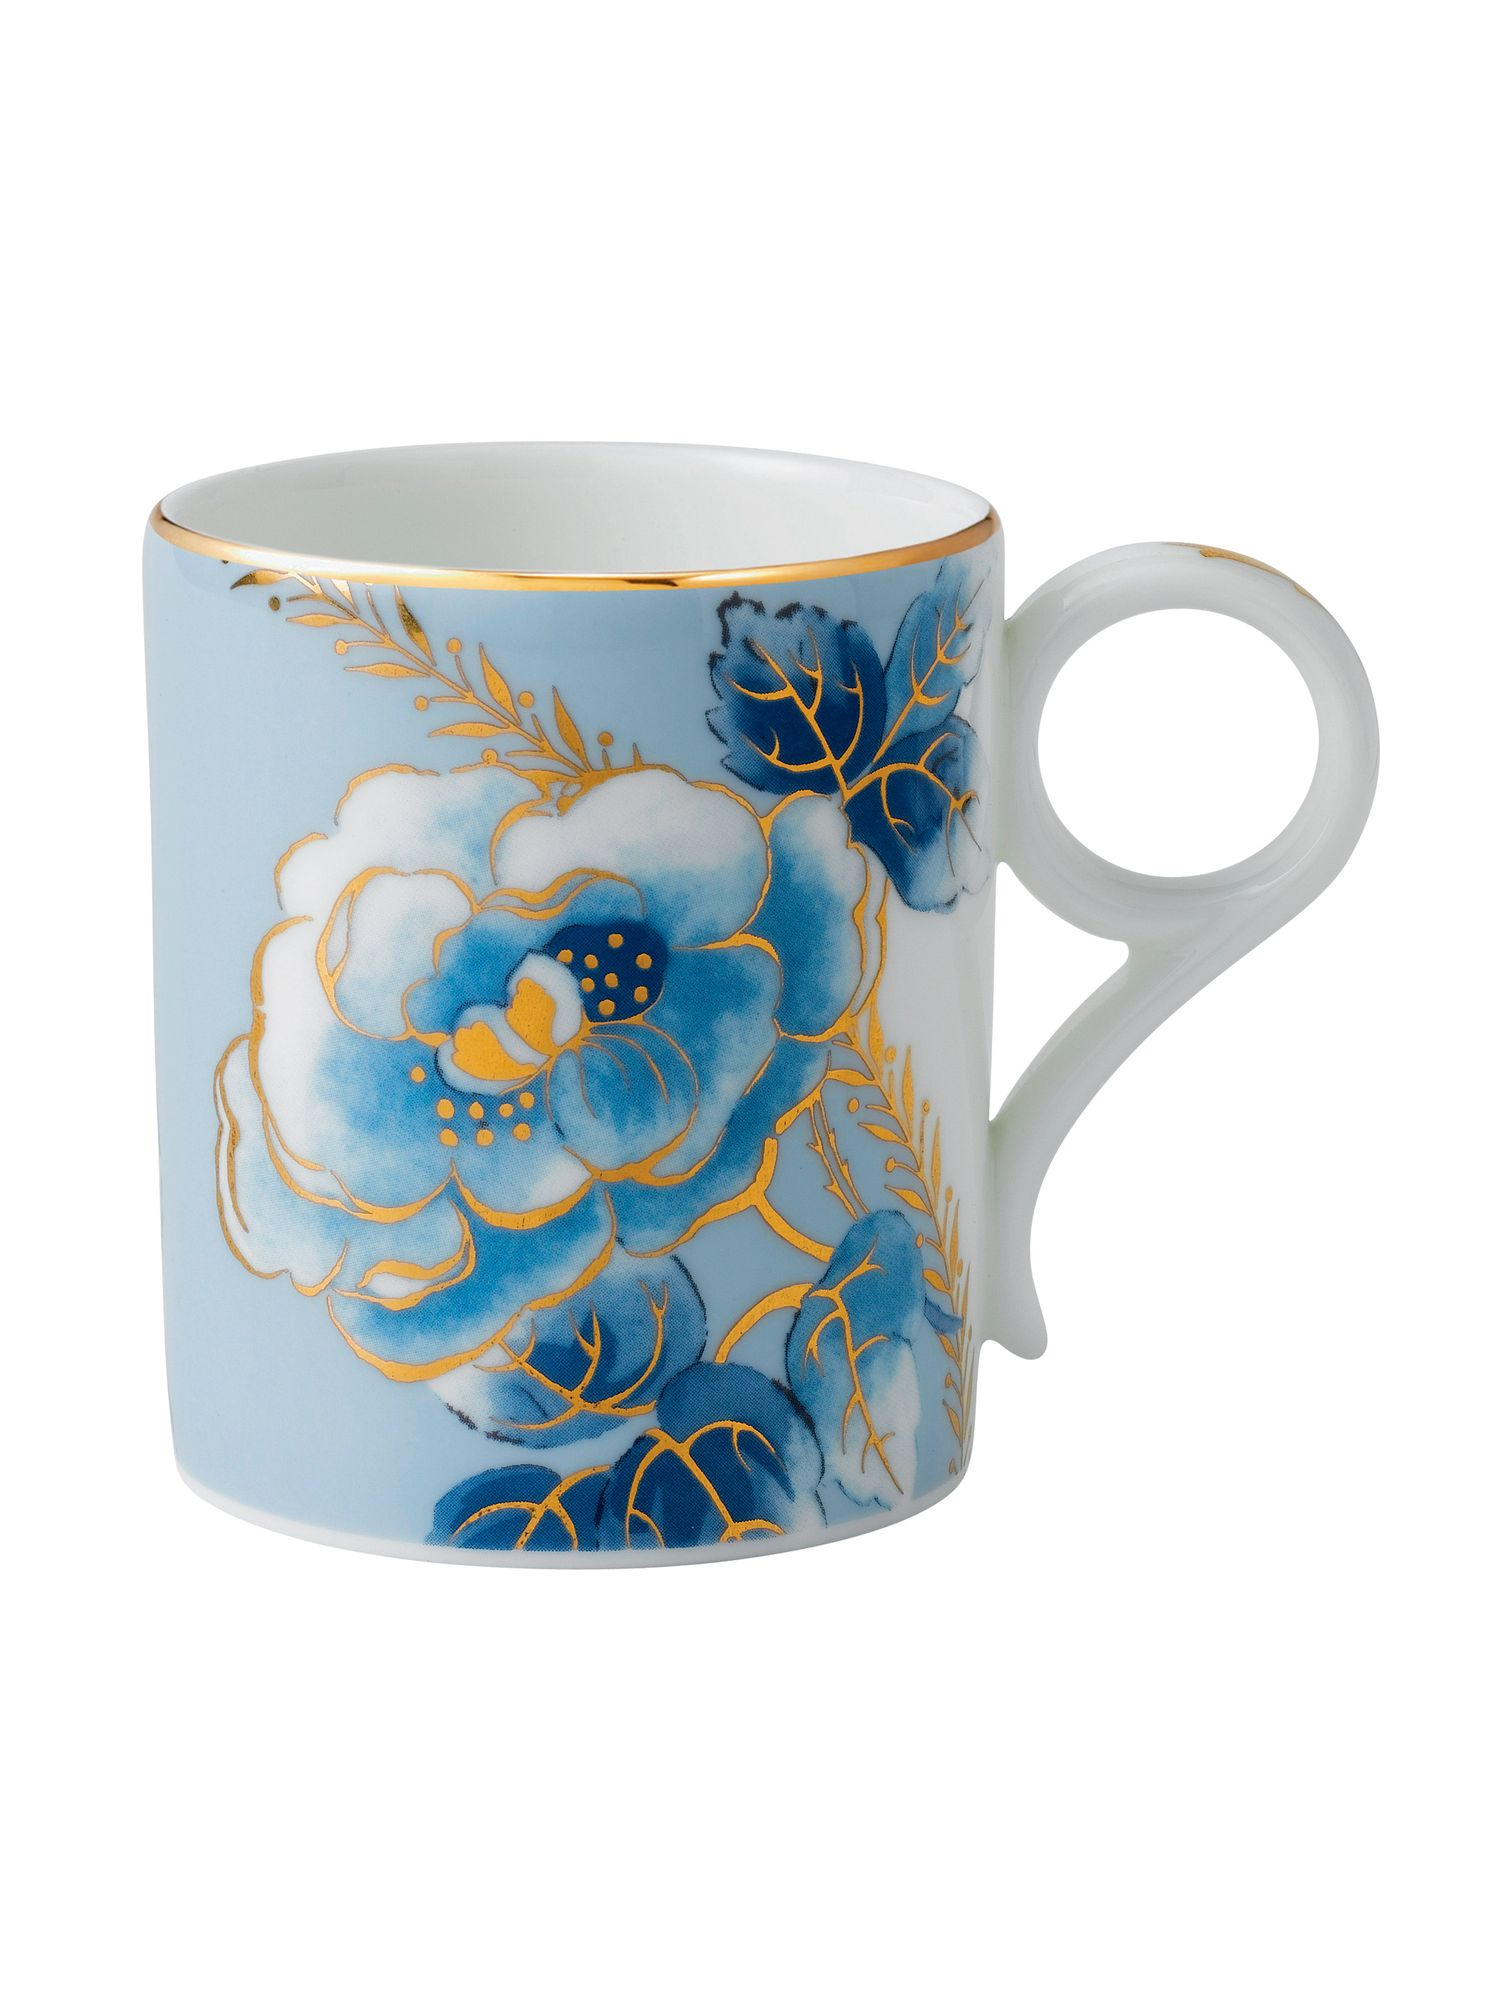 Archive collection blue peony mug